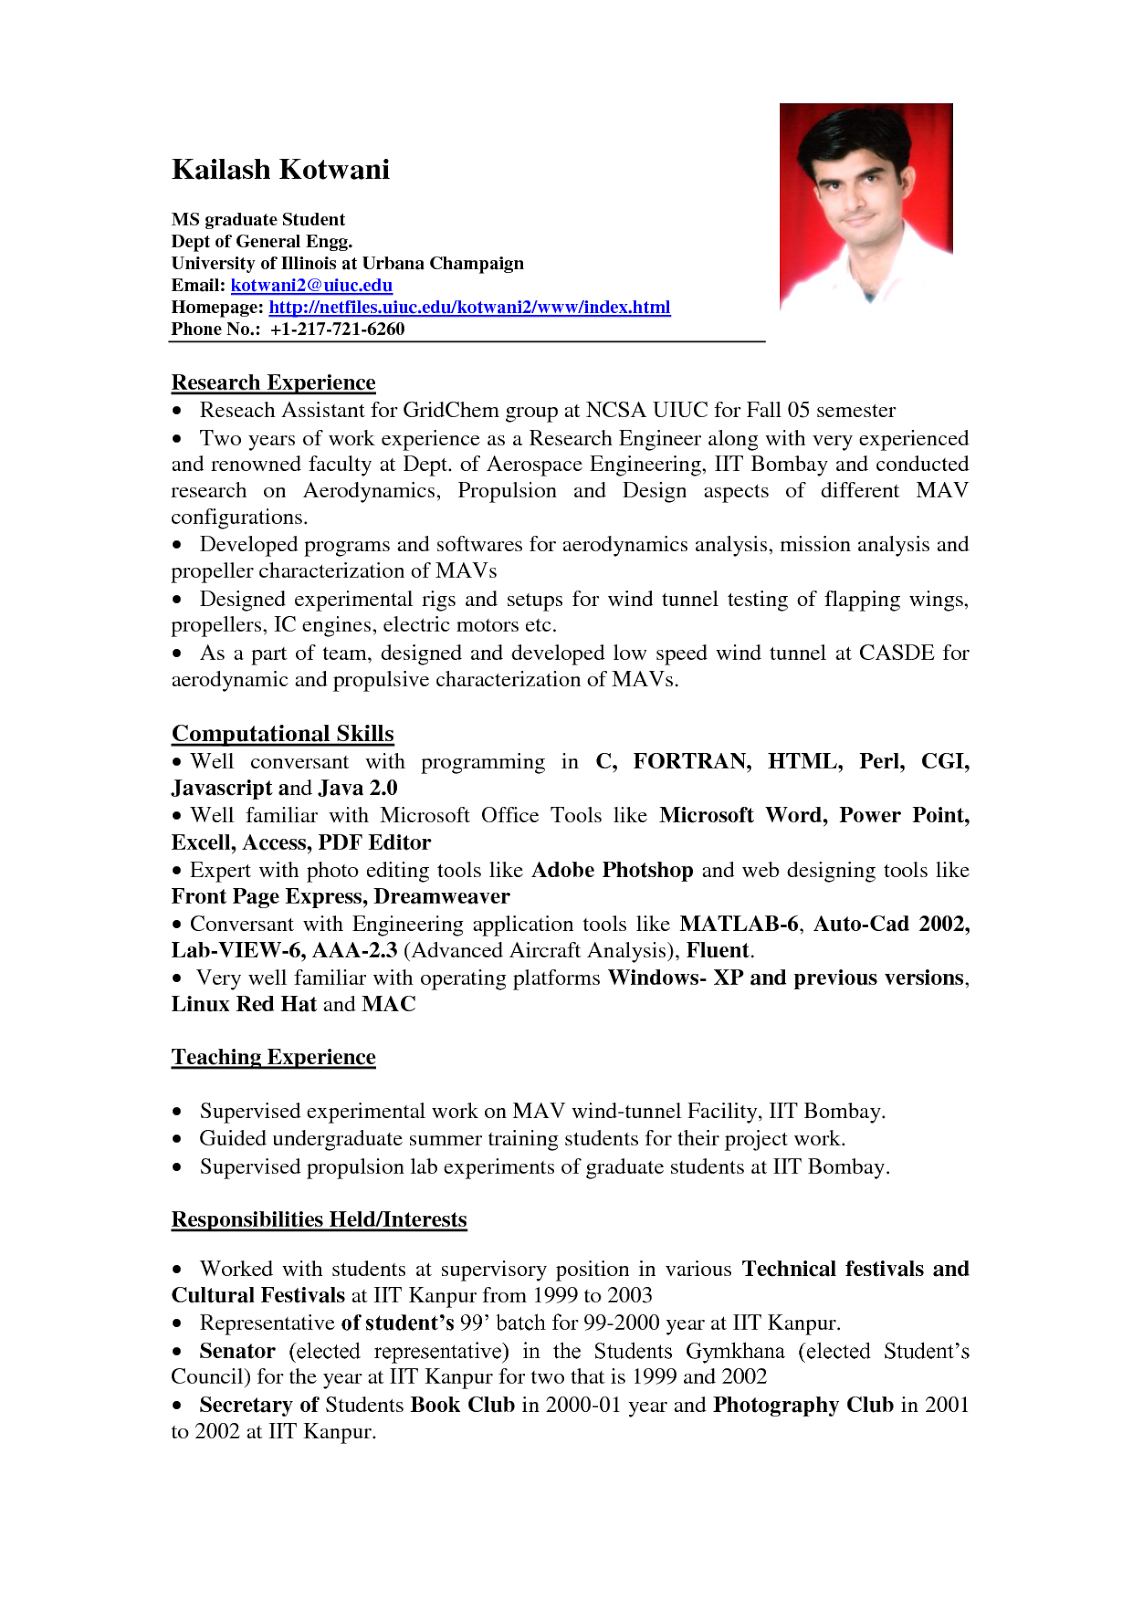 Example of resume template